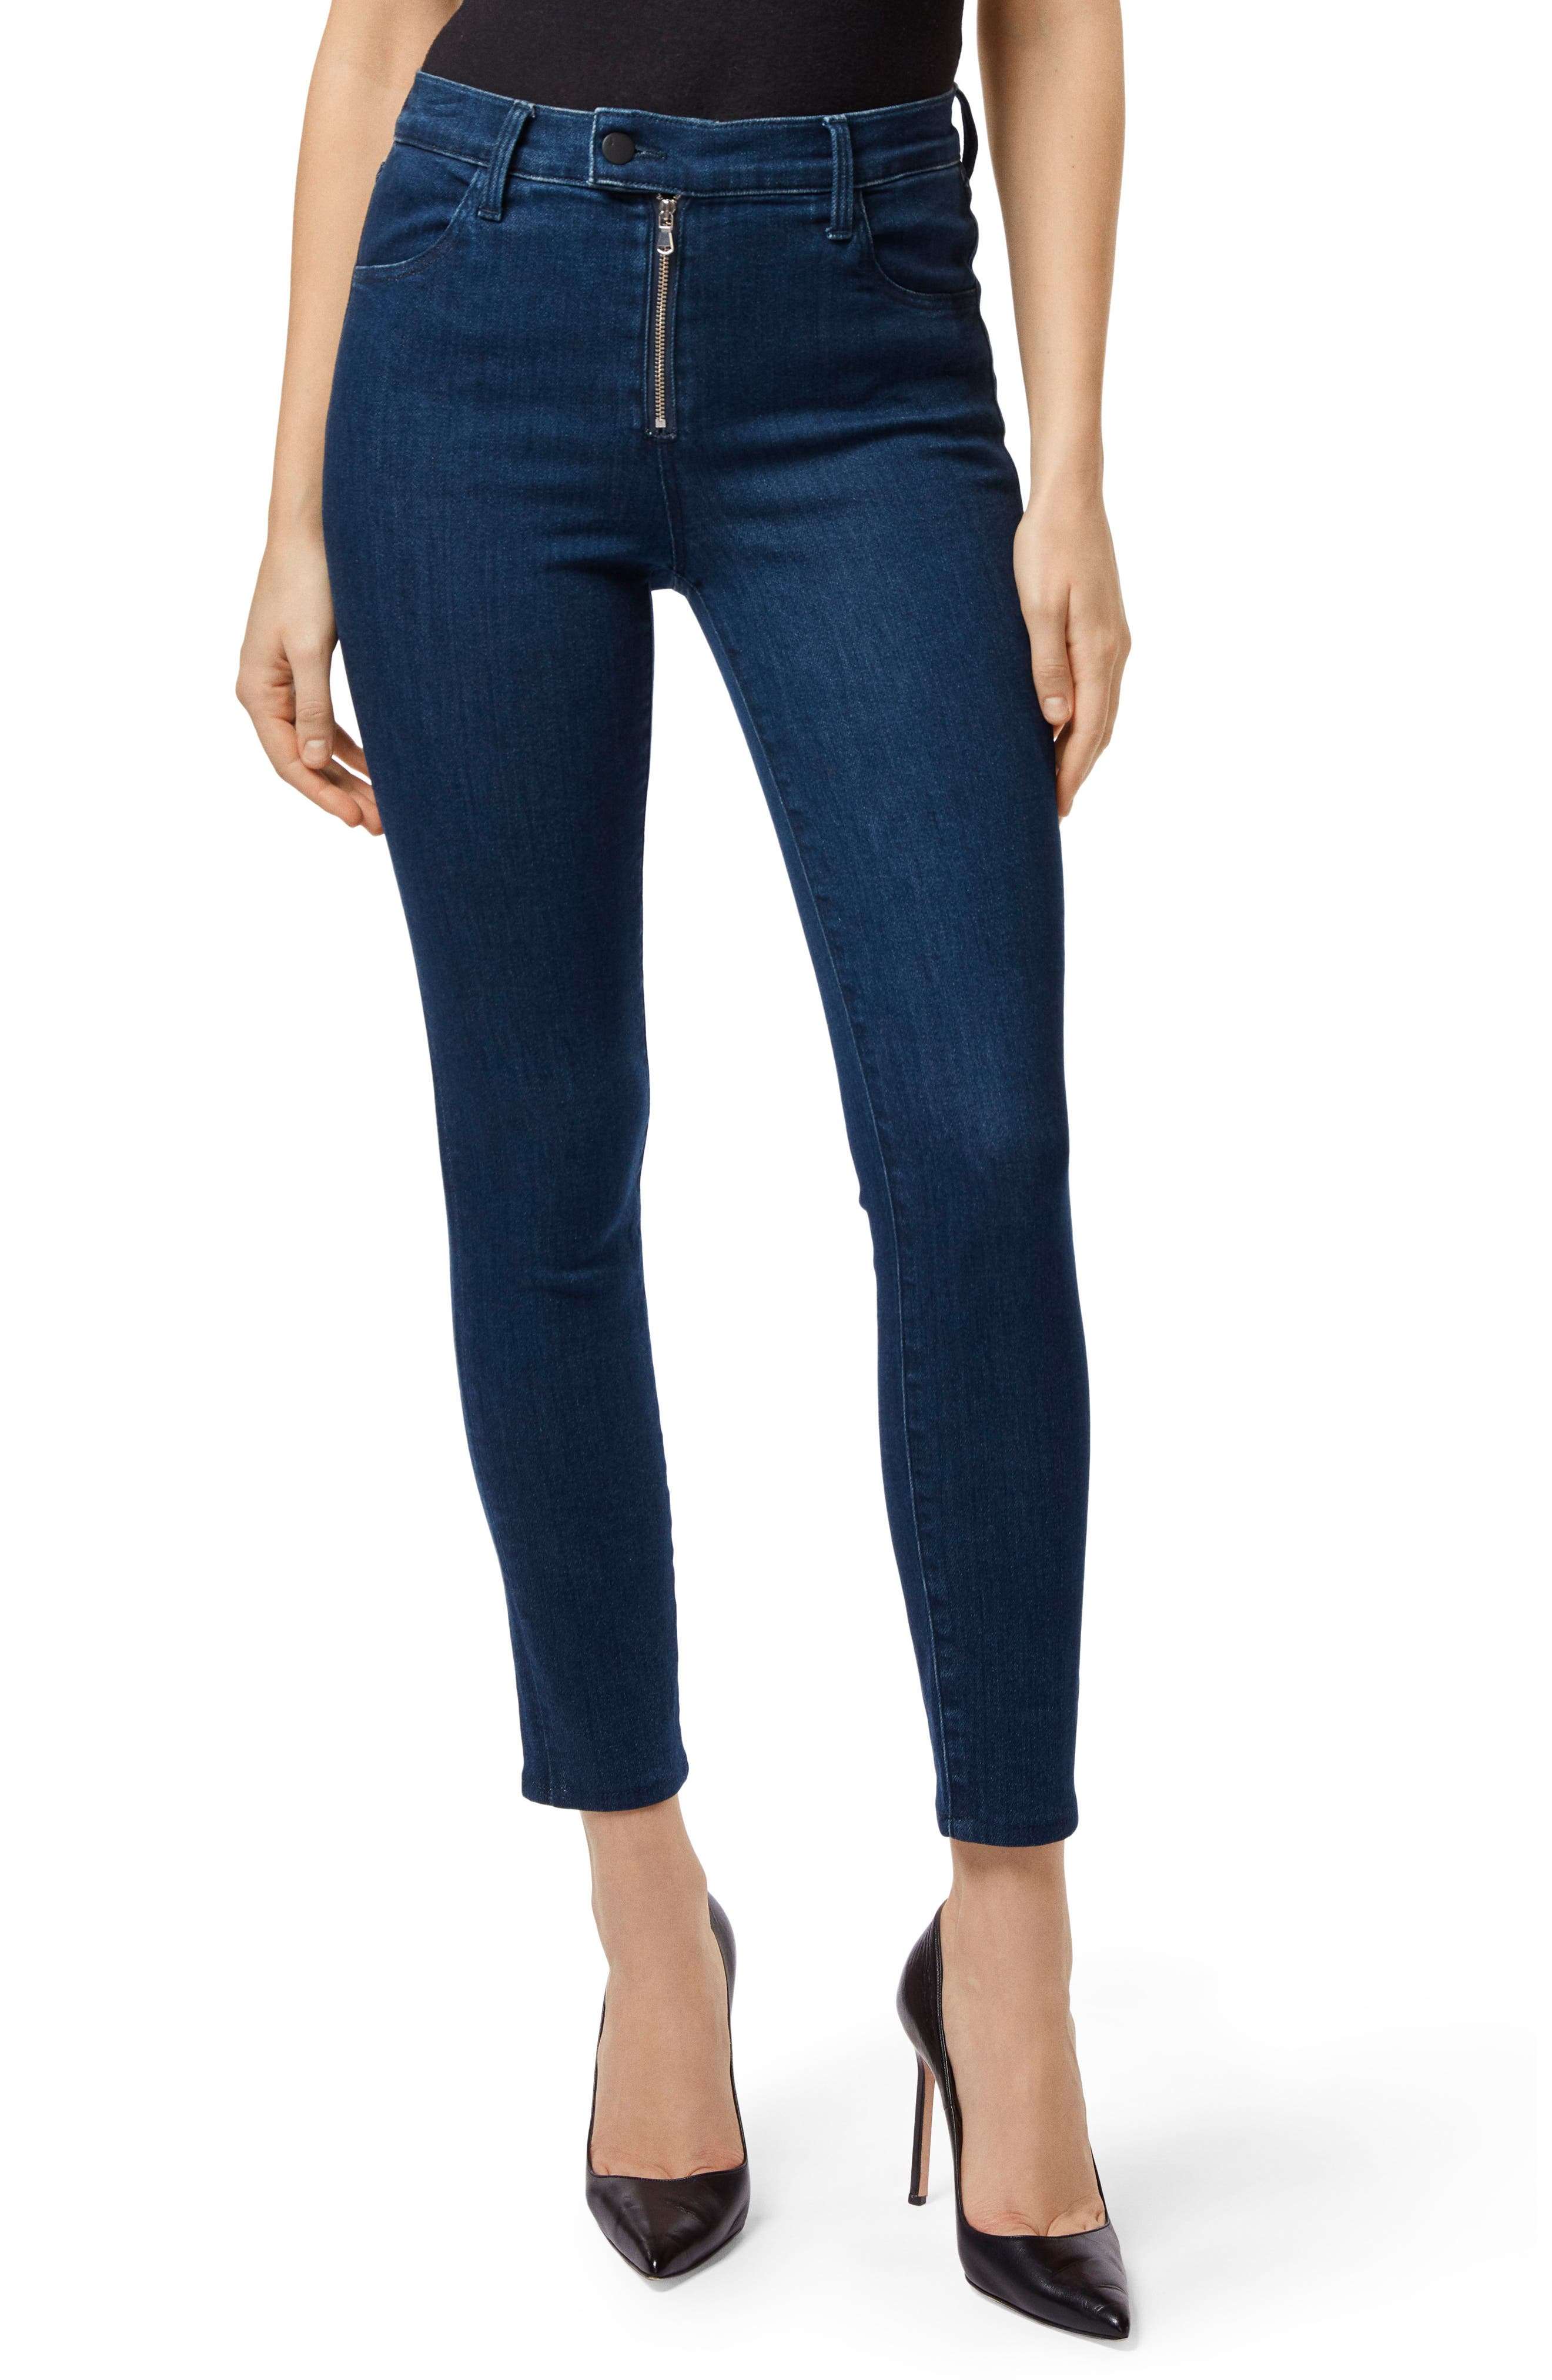 Alana Exposed Zip High Waist Ankle Skinny Jeans,                         Main,                         color, 439